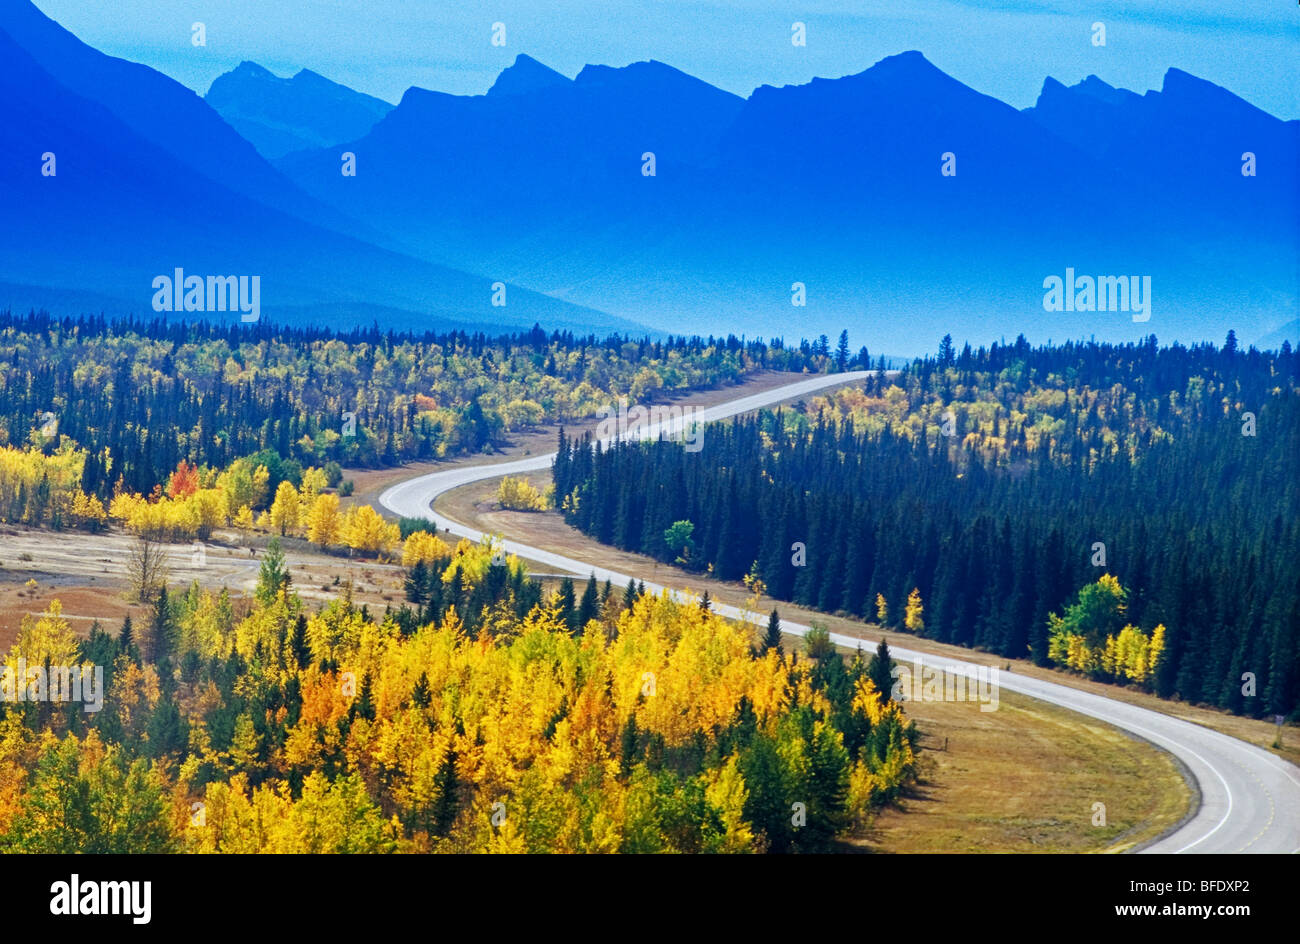 Road through the Canadian Rockies in autumn, David Thompson Highway, Alberta, Canada - Stock Image